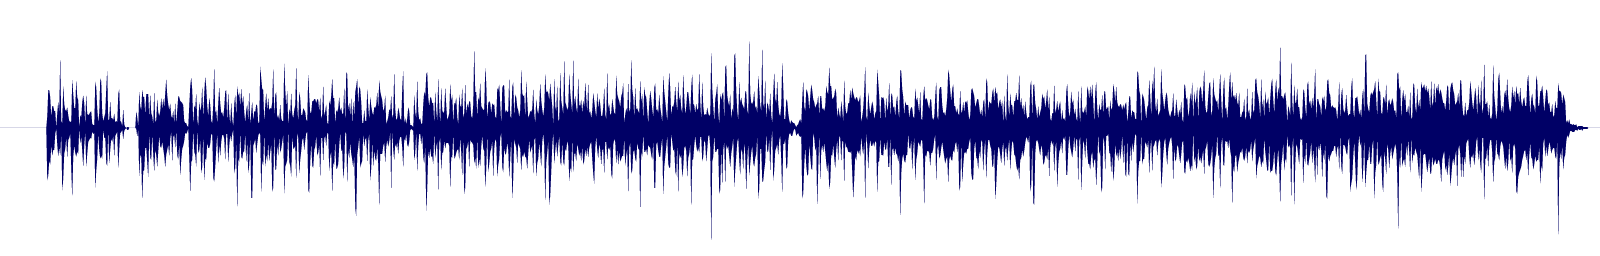 waveform of track #109748